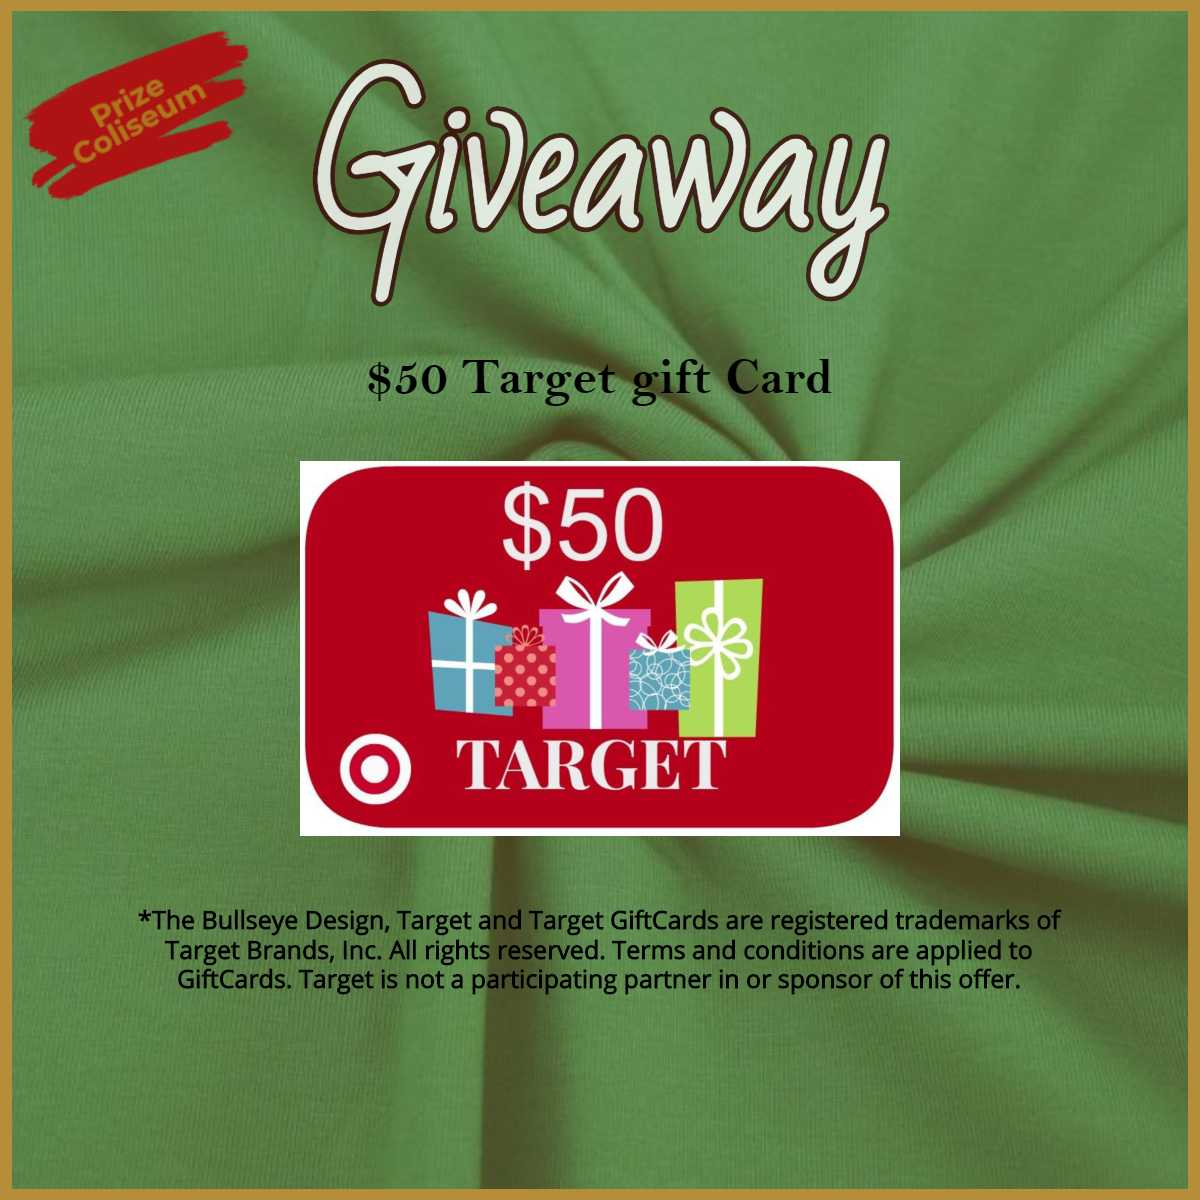 Enter for a chance to win a $50 Target Gift Card from PrizeColiseum Giveaway Image